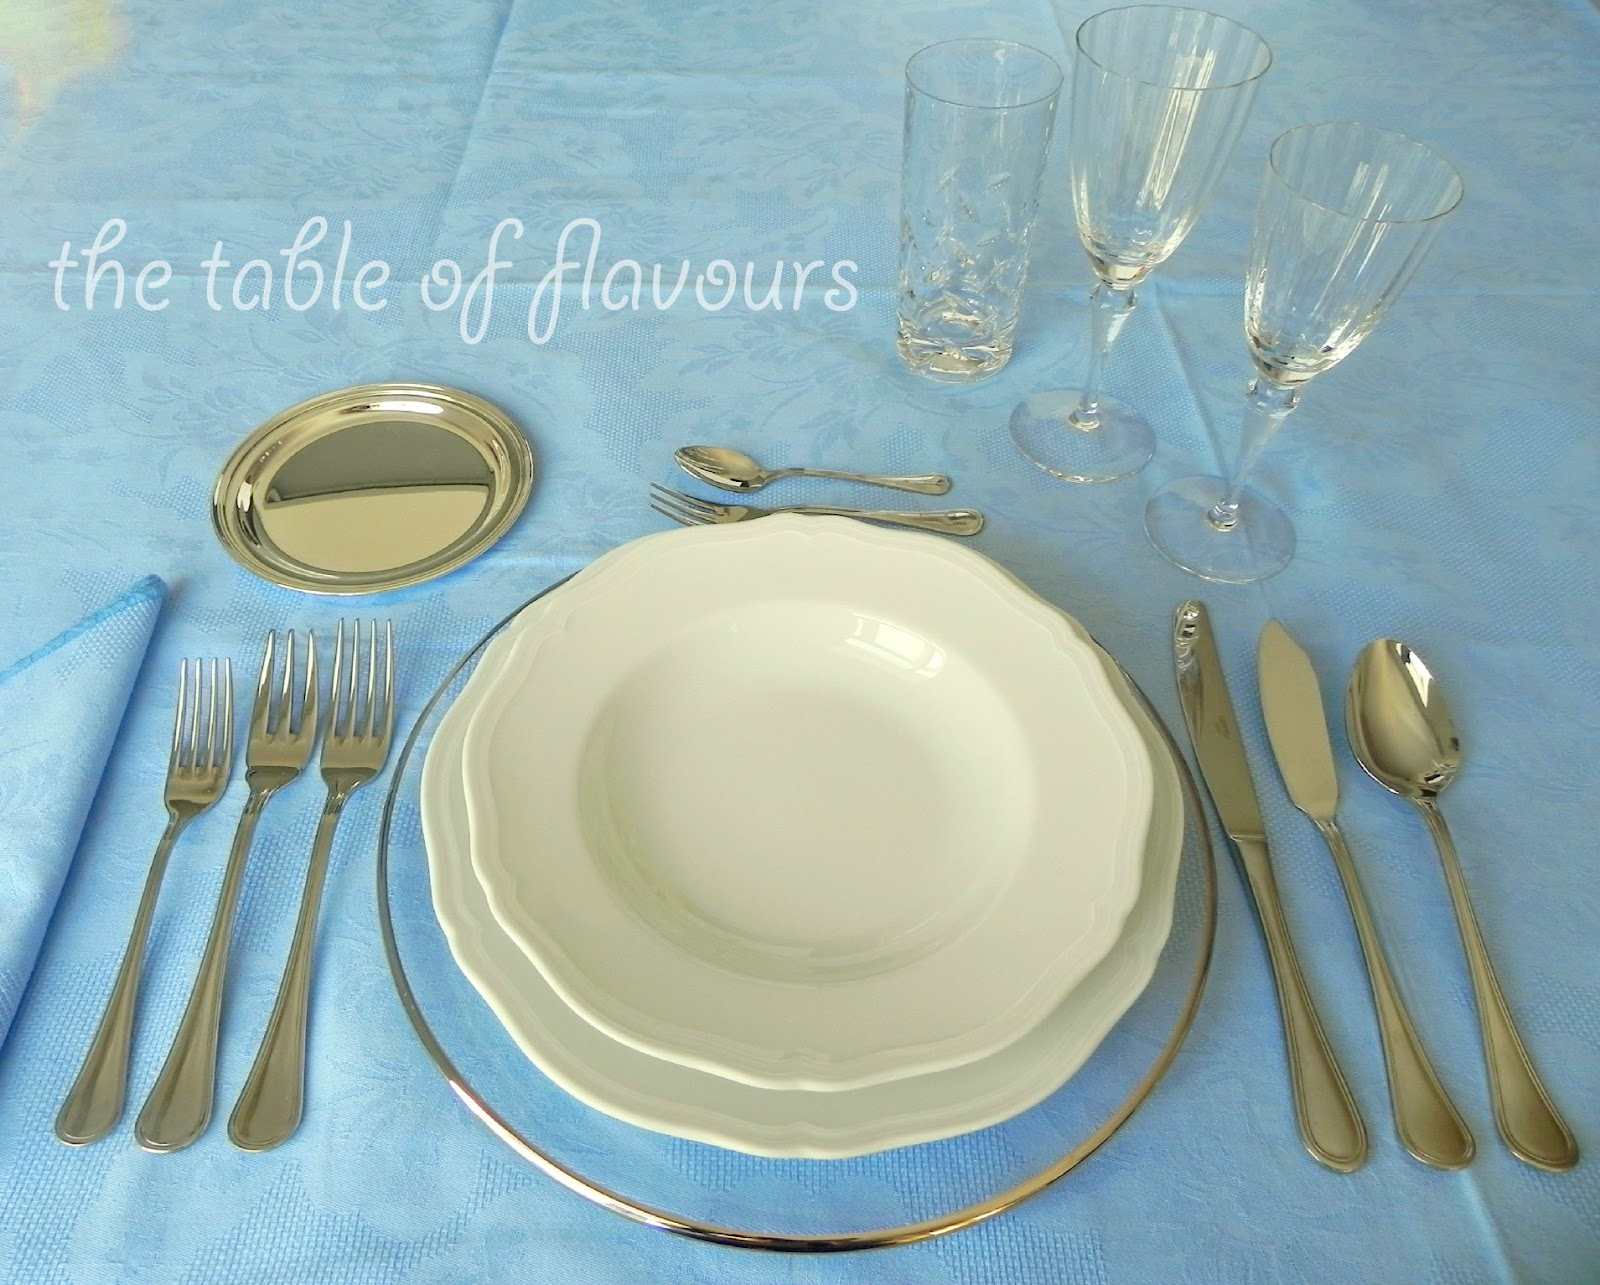 The Table of Flavours: 5 Basic Rules for the Formal Table Setting